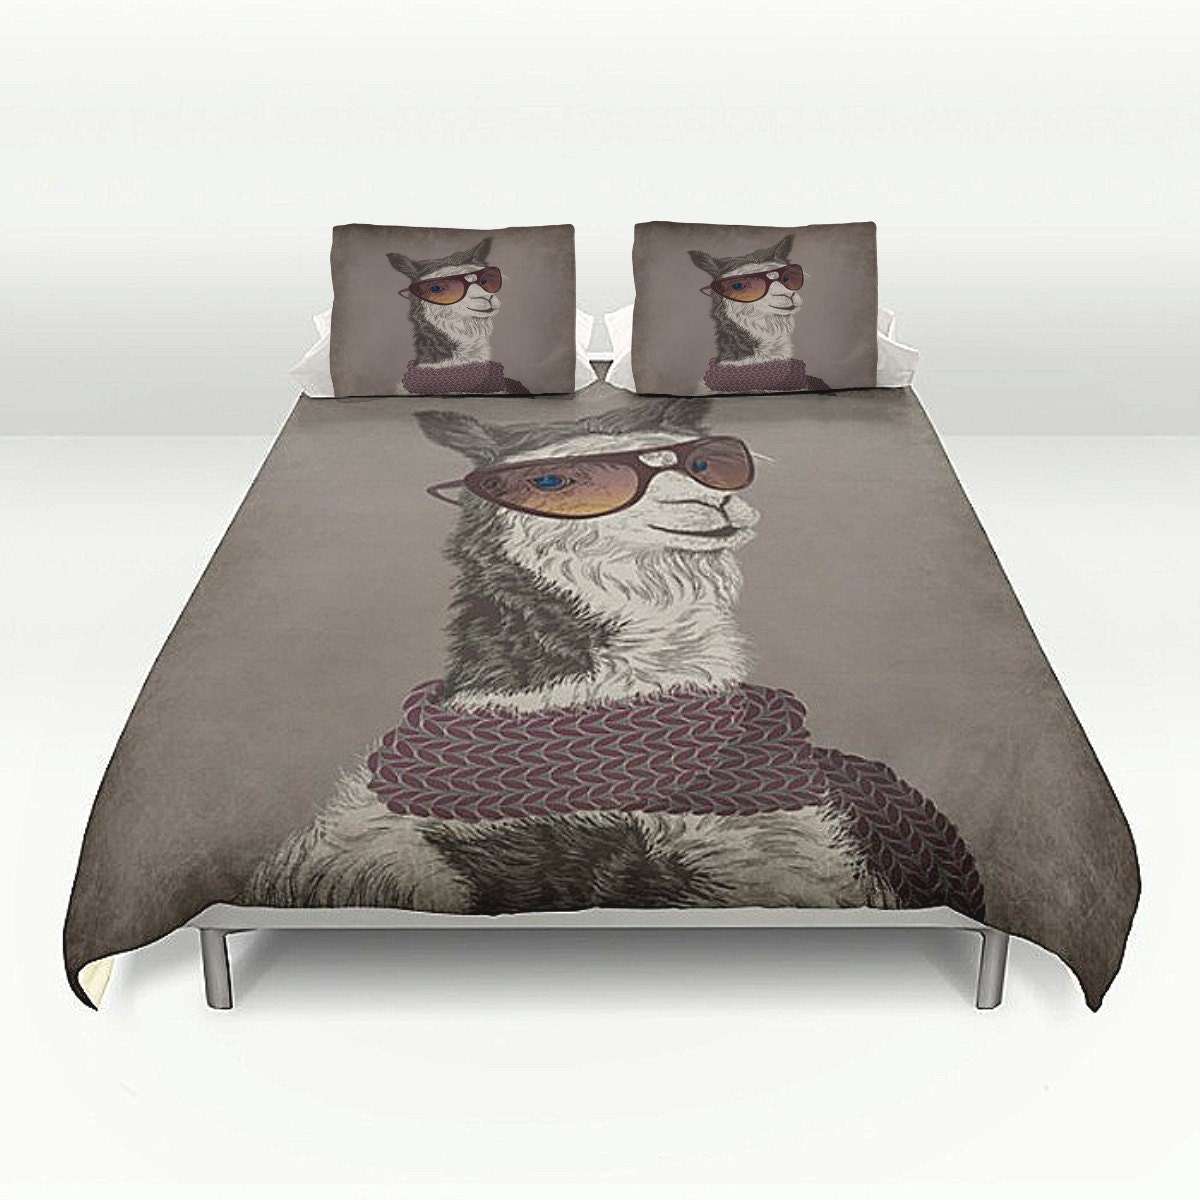 Bedding Hipster Llama Duvet Cover Set Soft Brown Or Gray